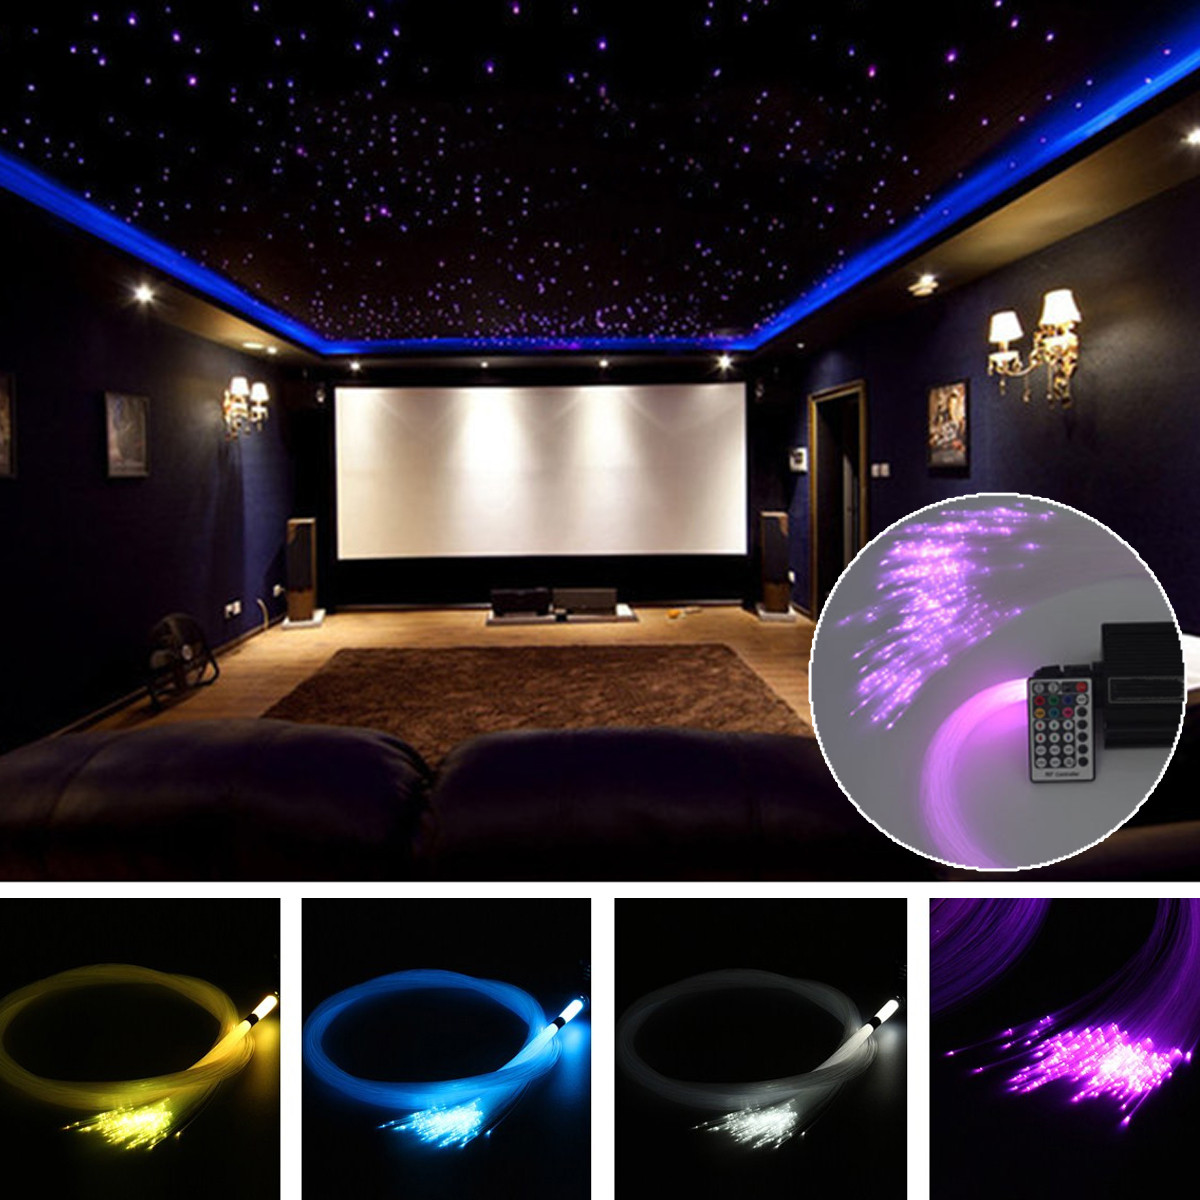 150Pcs 0.75mm X 2m RGB Fiber Optic Lights DIY  LED Strips Star Ceiling Light  Decoration Kit For Fiber Optic Light Machine